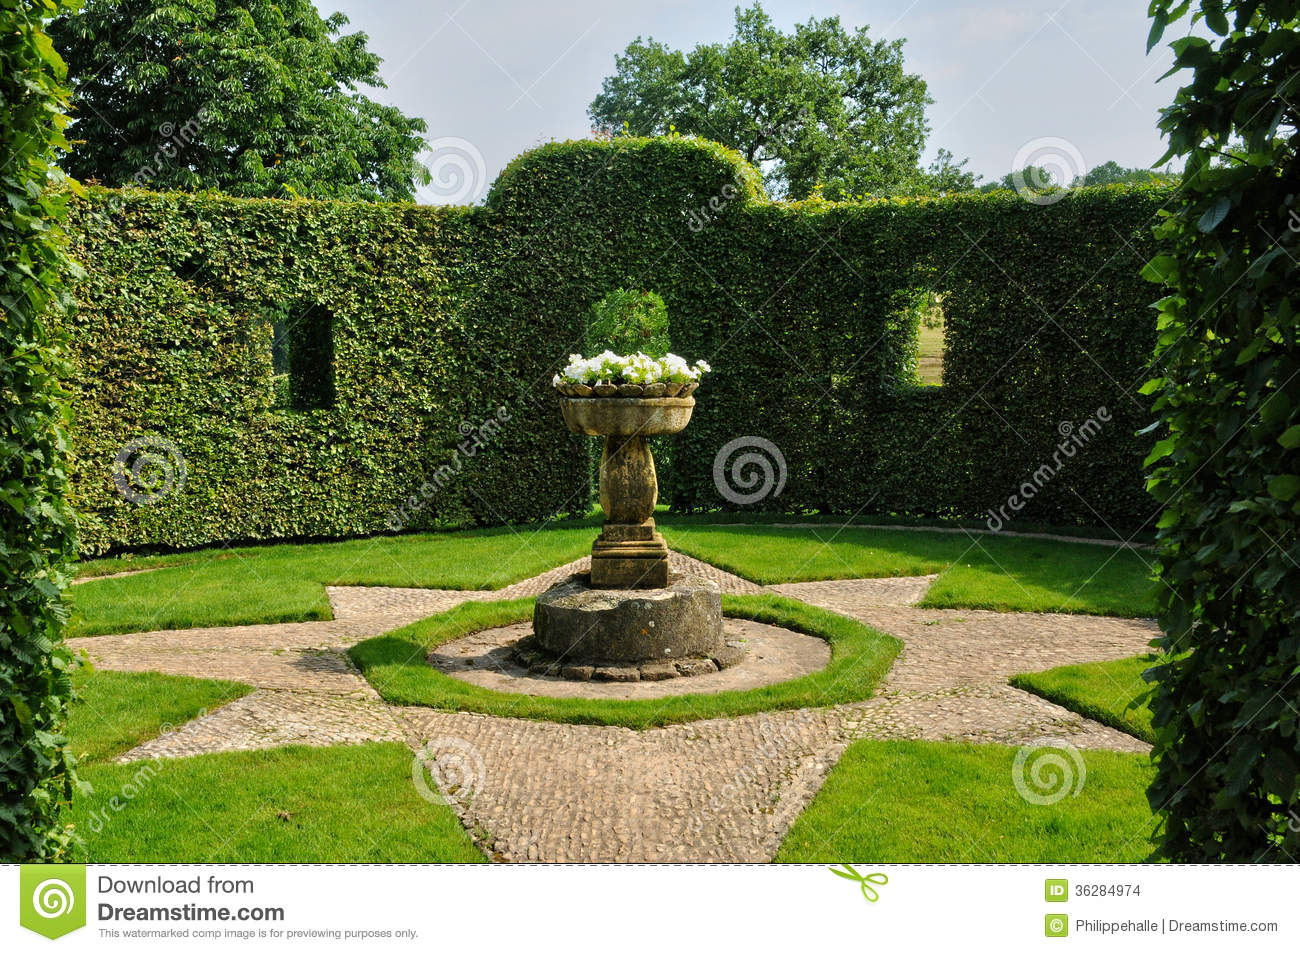 France picturesque jardins du manoir d eyrignac in dordogne stock images image 36284974 - Jardin du manoir d eyrignac ...